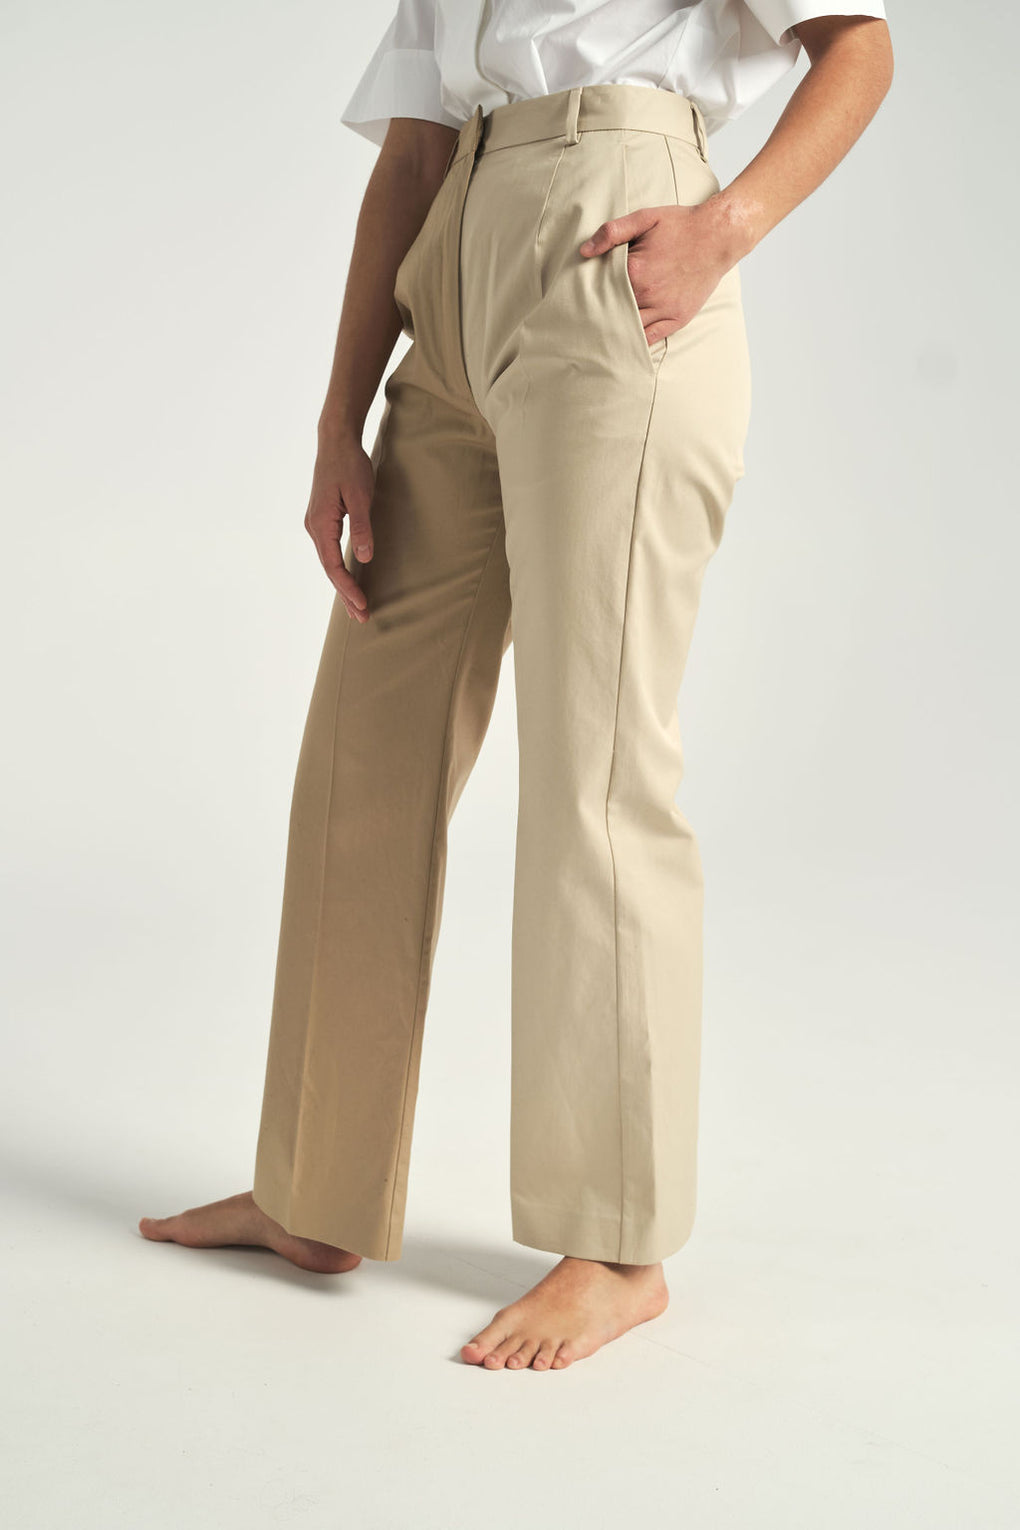 MM6 - Maison Margiela - Two Tone Trouser - Bi-Tonal Trouser - Idun - St. Paul